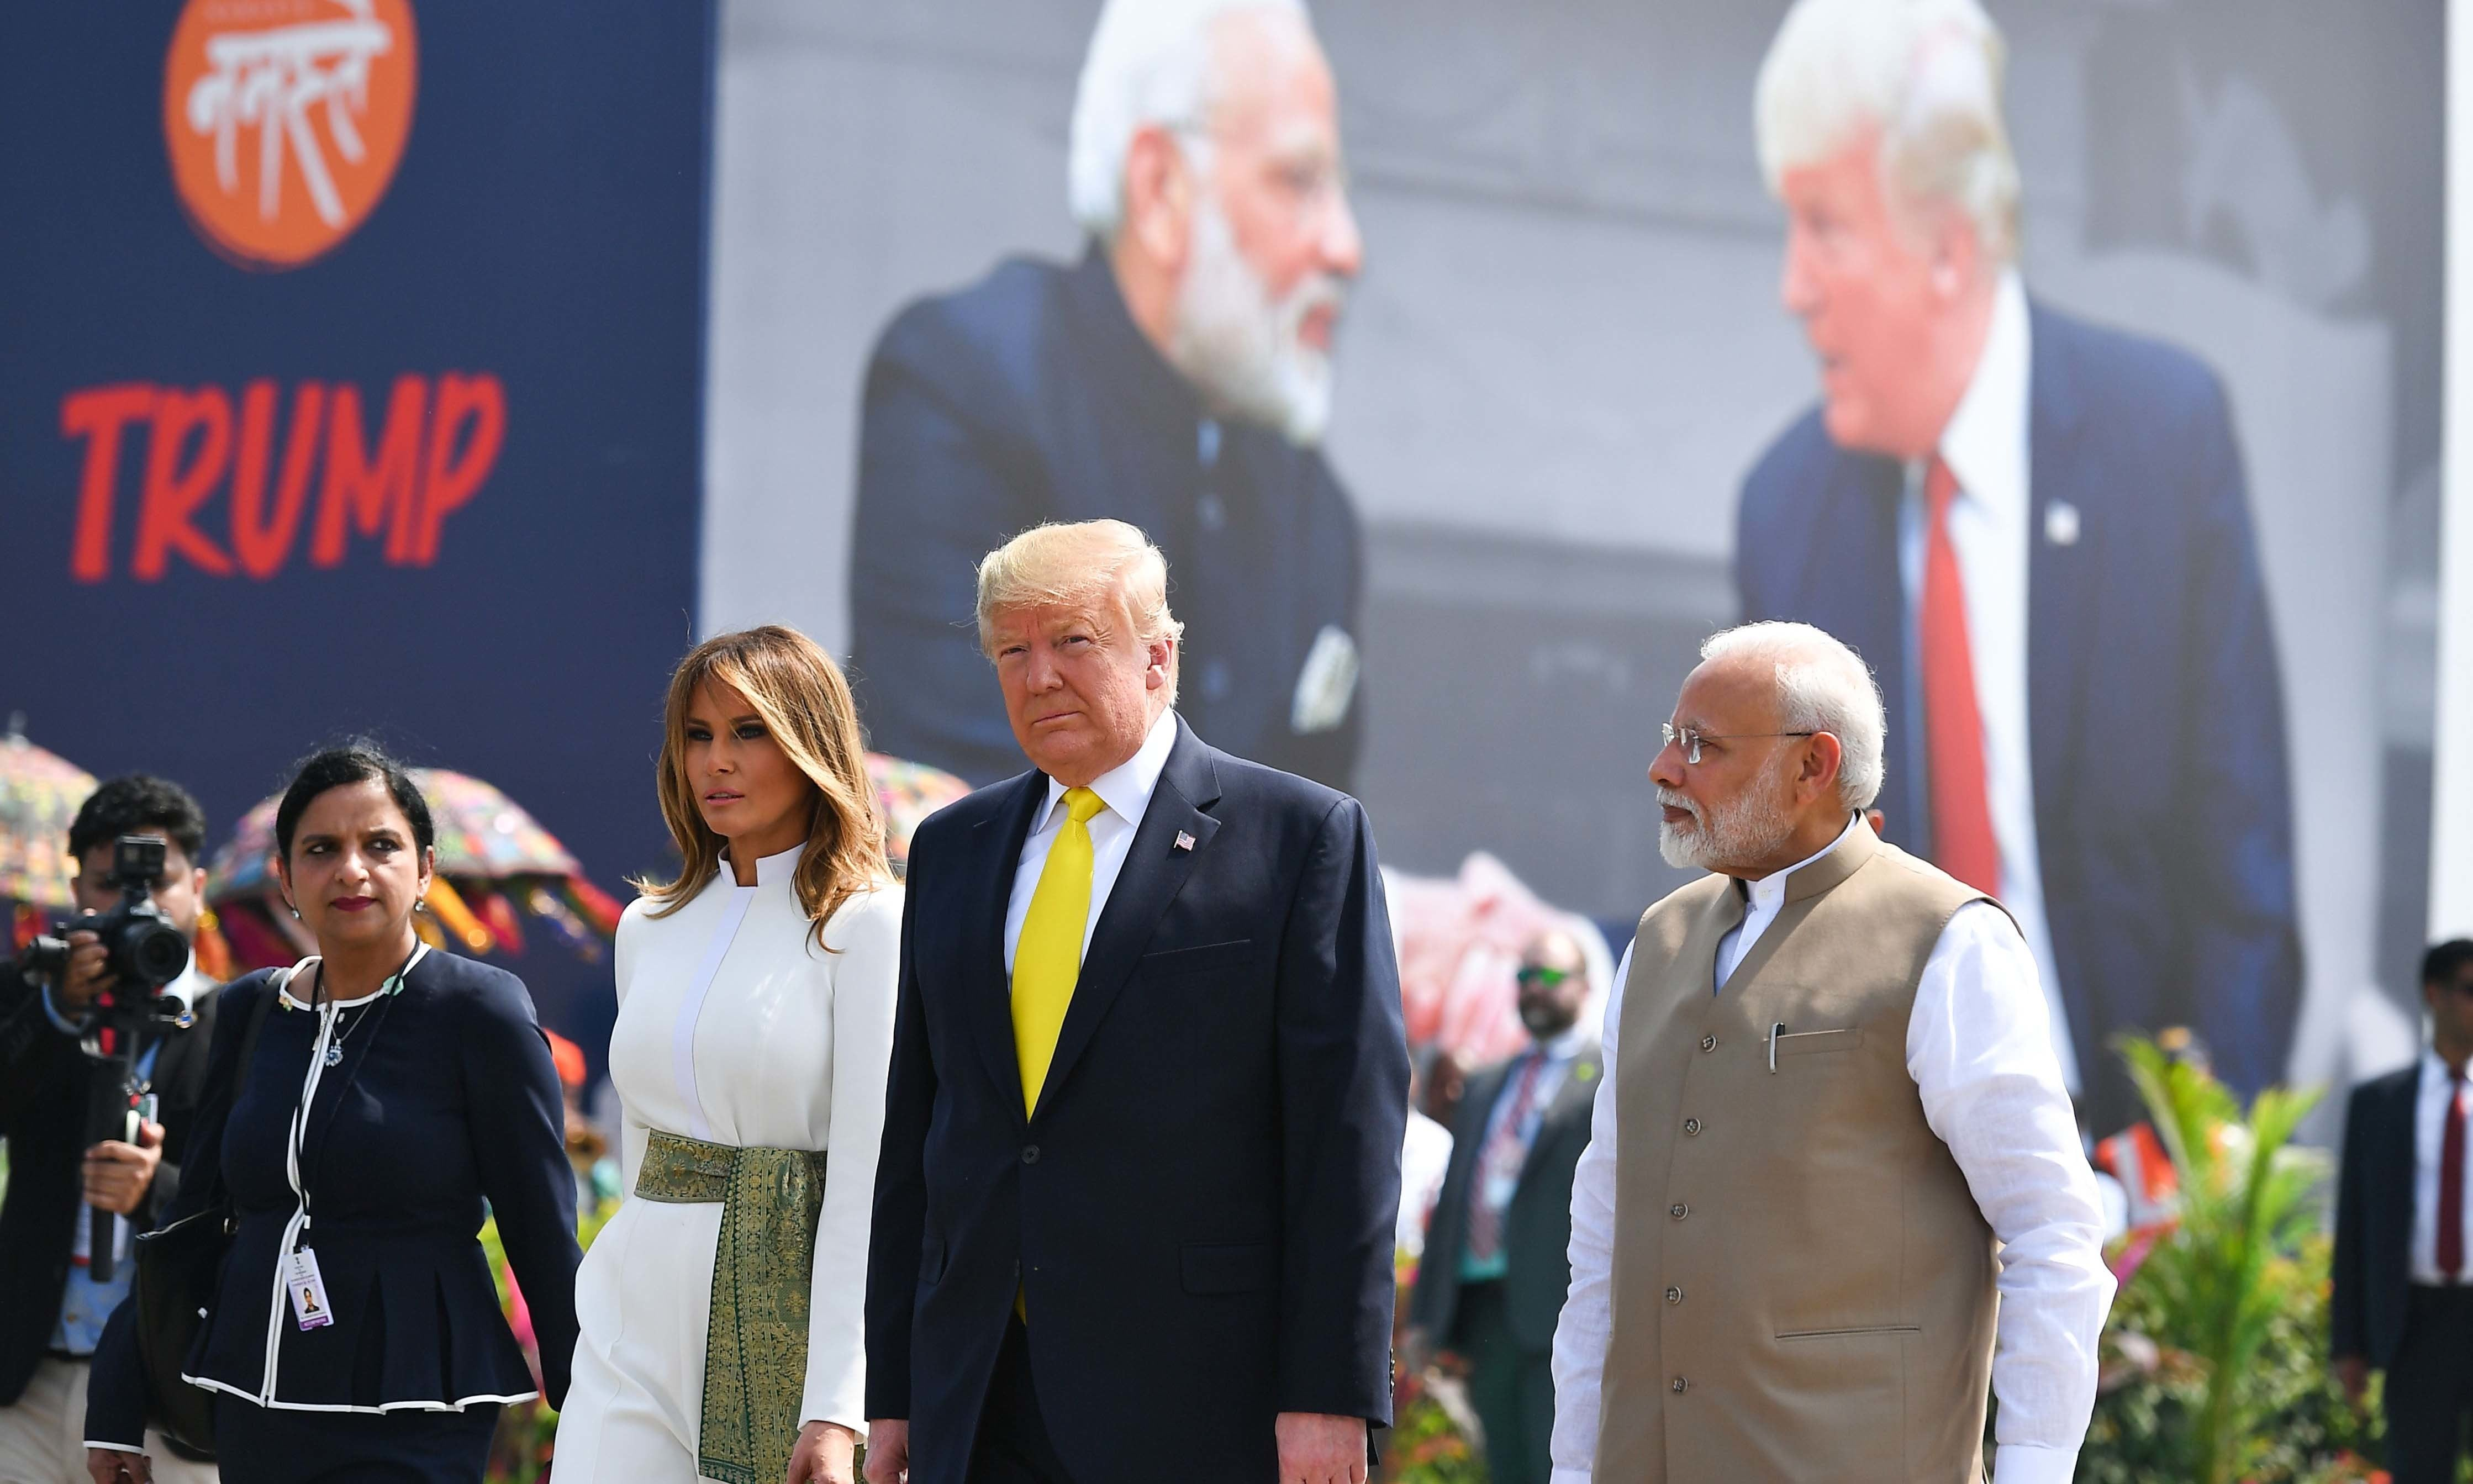 India's Prime Minister Narendra Modi (R) greet US President Donald Trump (C) and First Lady Melania Trump (2L) upon their arrival at Sardar Vallabhbhai Patel International Airport in Ahmedabad on February 24, 2020. — AFP